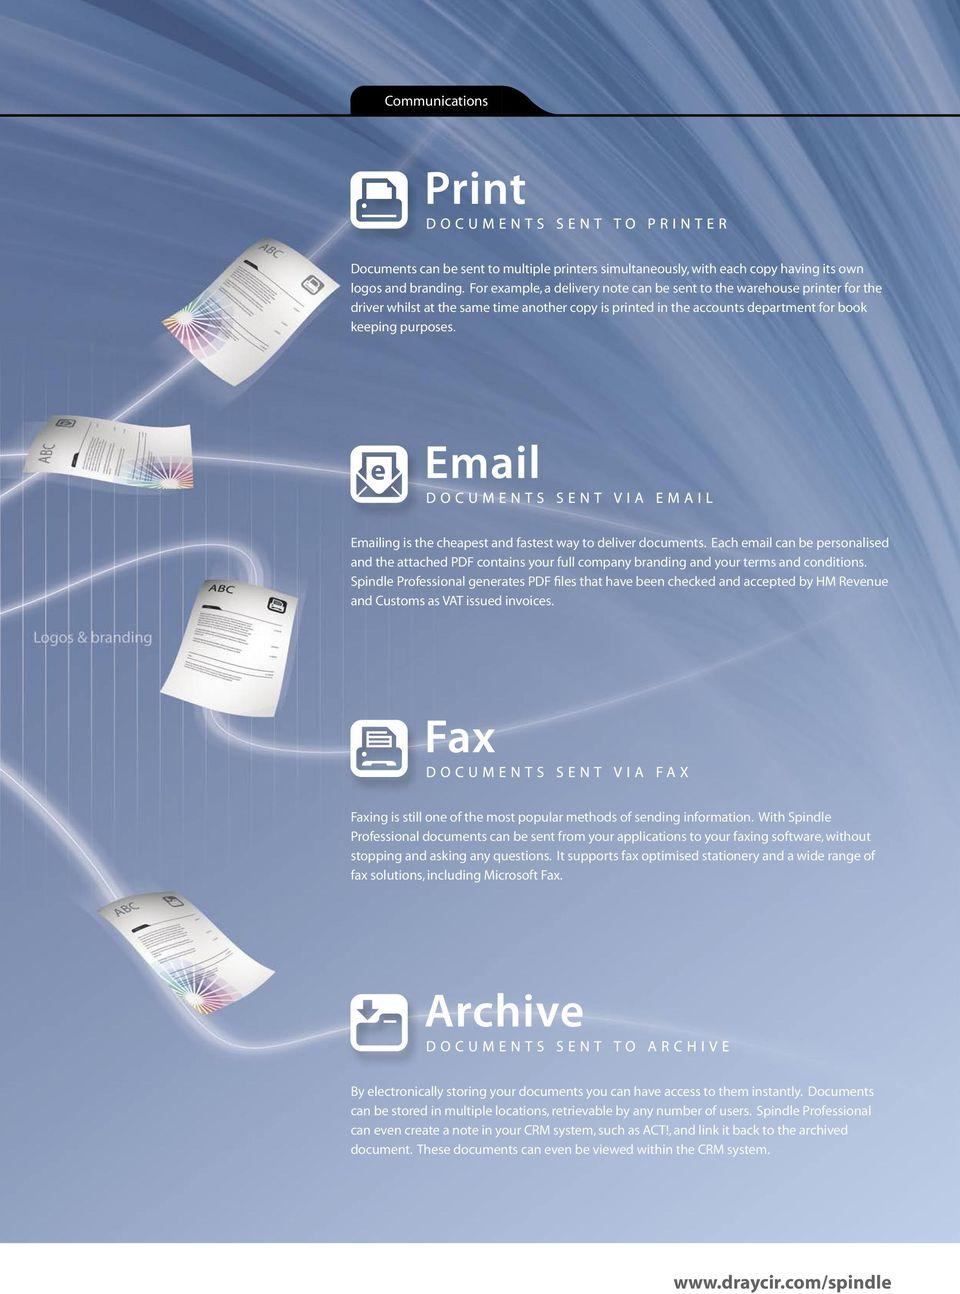 Emailing is the cheapest and fastest way to deliver documents. Each email can be personalised and the attached PDF contains your full company branding and your terms and conditions.